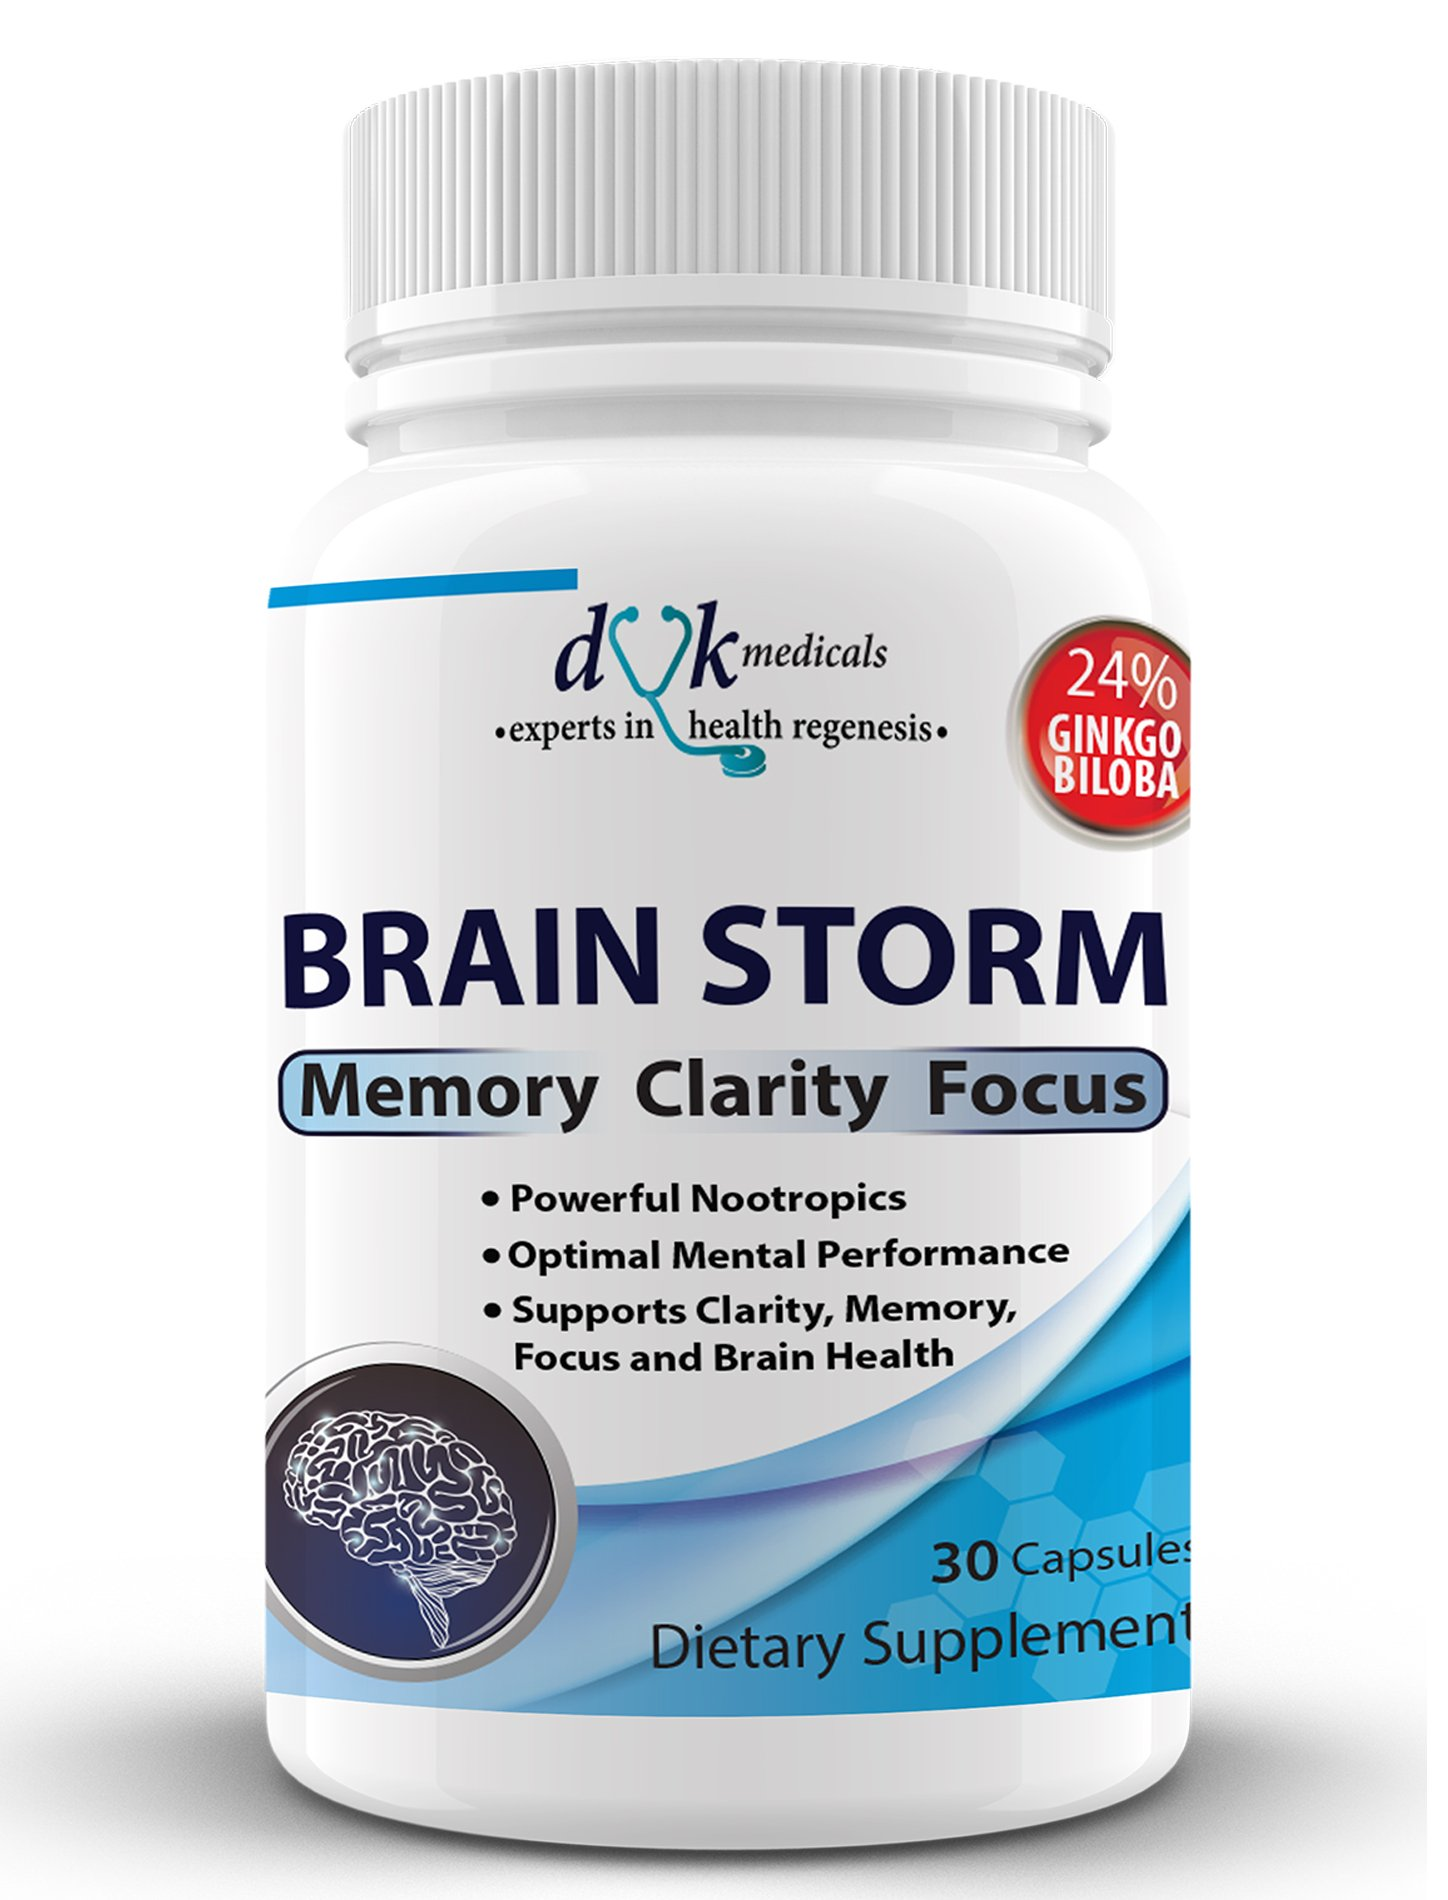 Brain Storm: Advanced Nootropic from DVK Medicals : Nerve support formula for Brain health: Support Memory, Focus, Clarity, Mood and Mind.